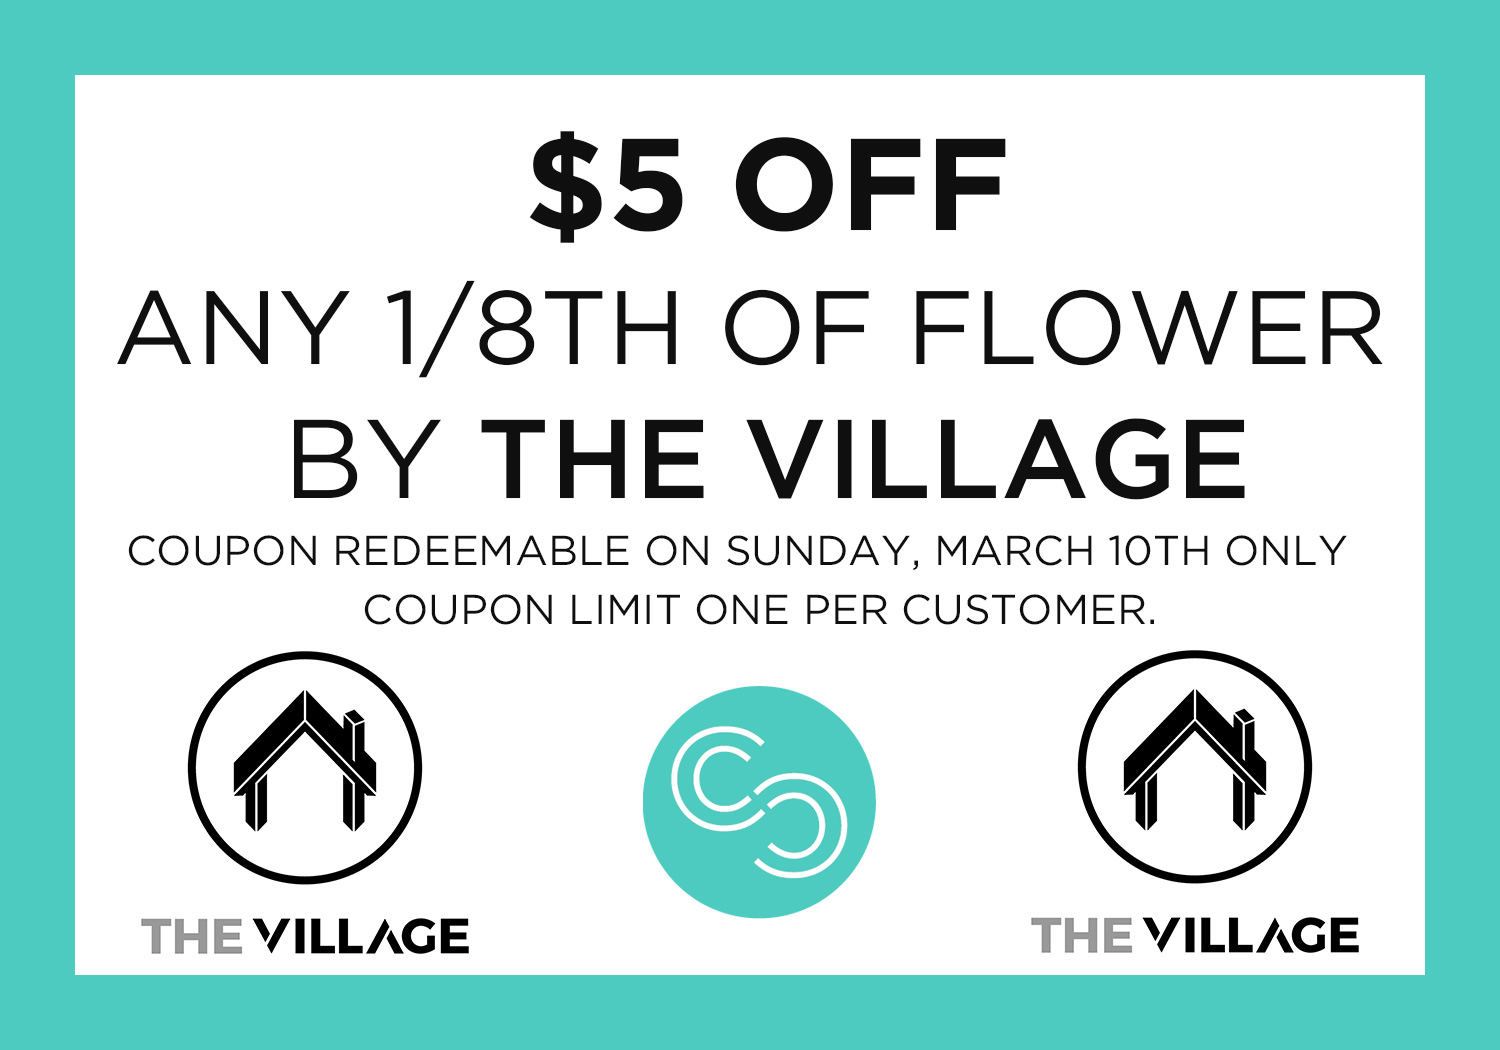 Save this coupon to your phone to receive $5 off an 1/8th of Village flower on Sunday, March 10th! Don't miss out on this epic drop!